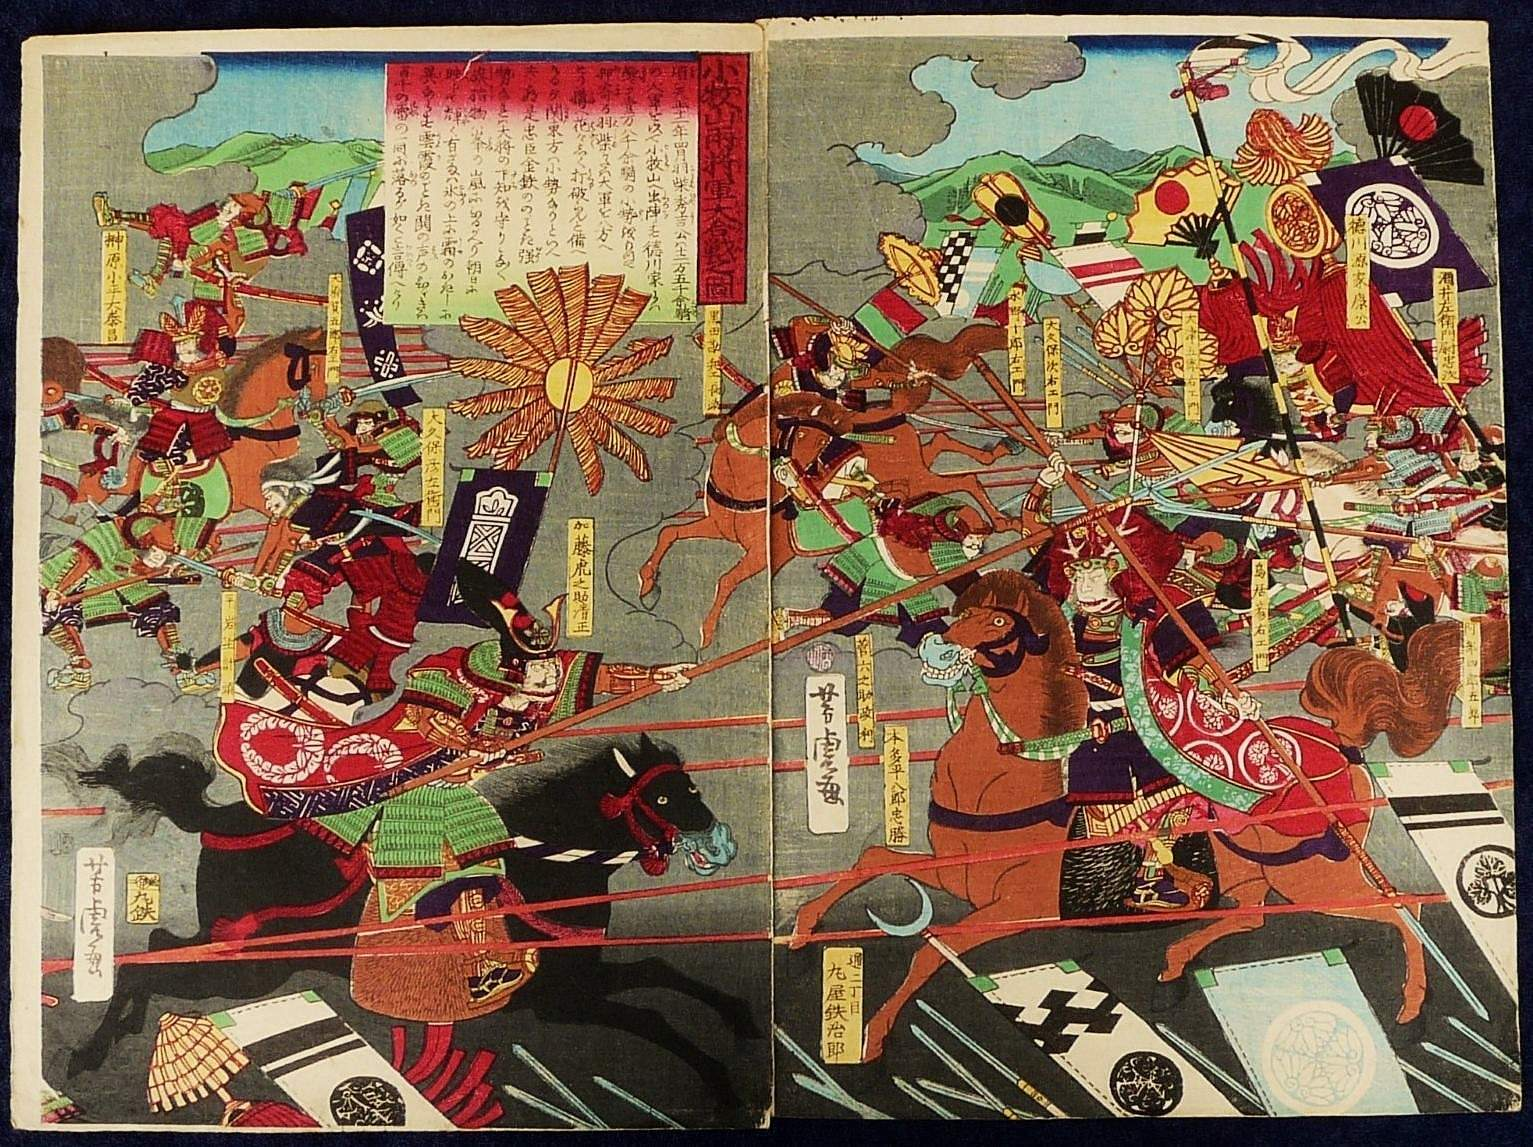 UTAGAWA YOSHITORA: #P3700 SUPERB DITYCH SHOWING SATO MASAKIYO IN BATTLE 1860s